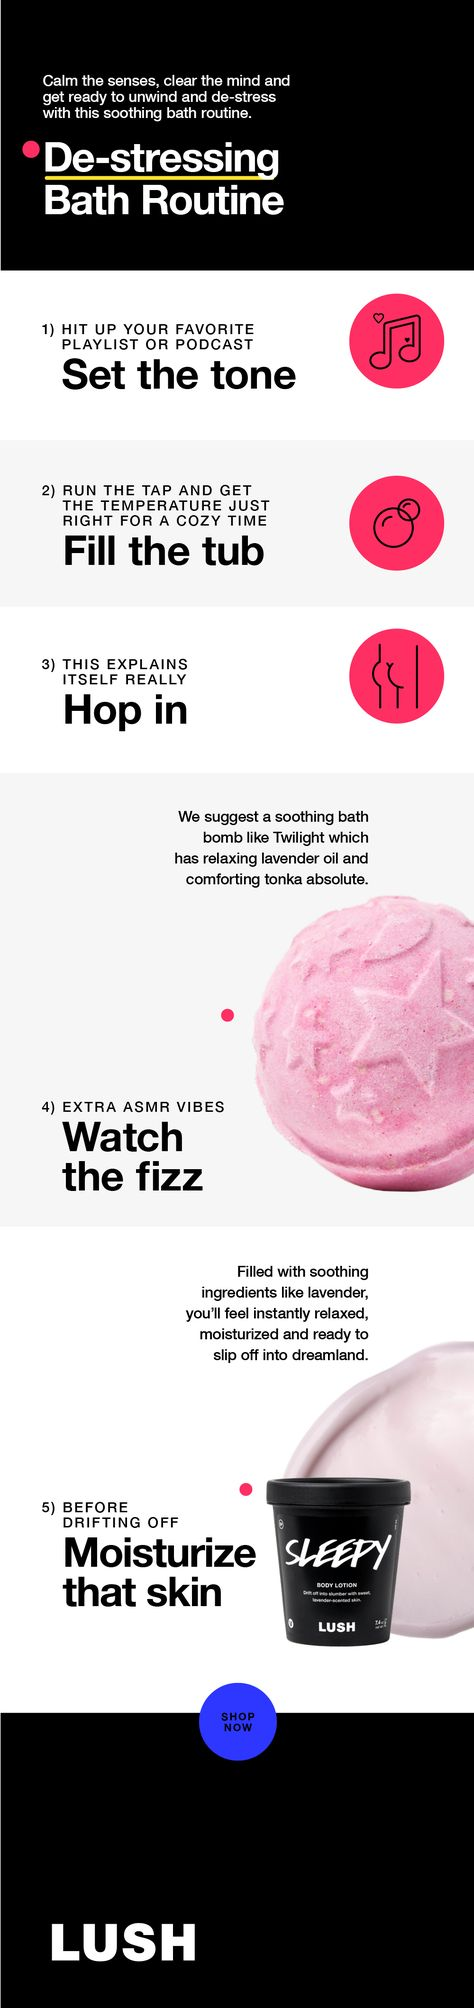 Calm the senses, clear the mind and get ready to unwind and de-stress with this soothing bath routine.  #destress #relax #unwind #chill #lushlife #lushcosmetics